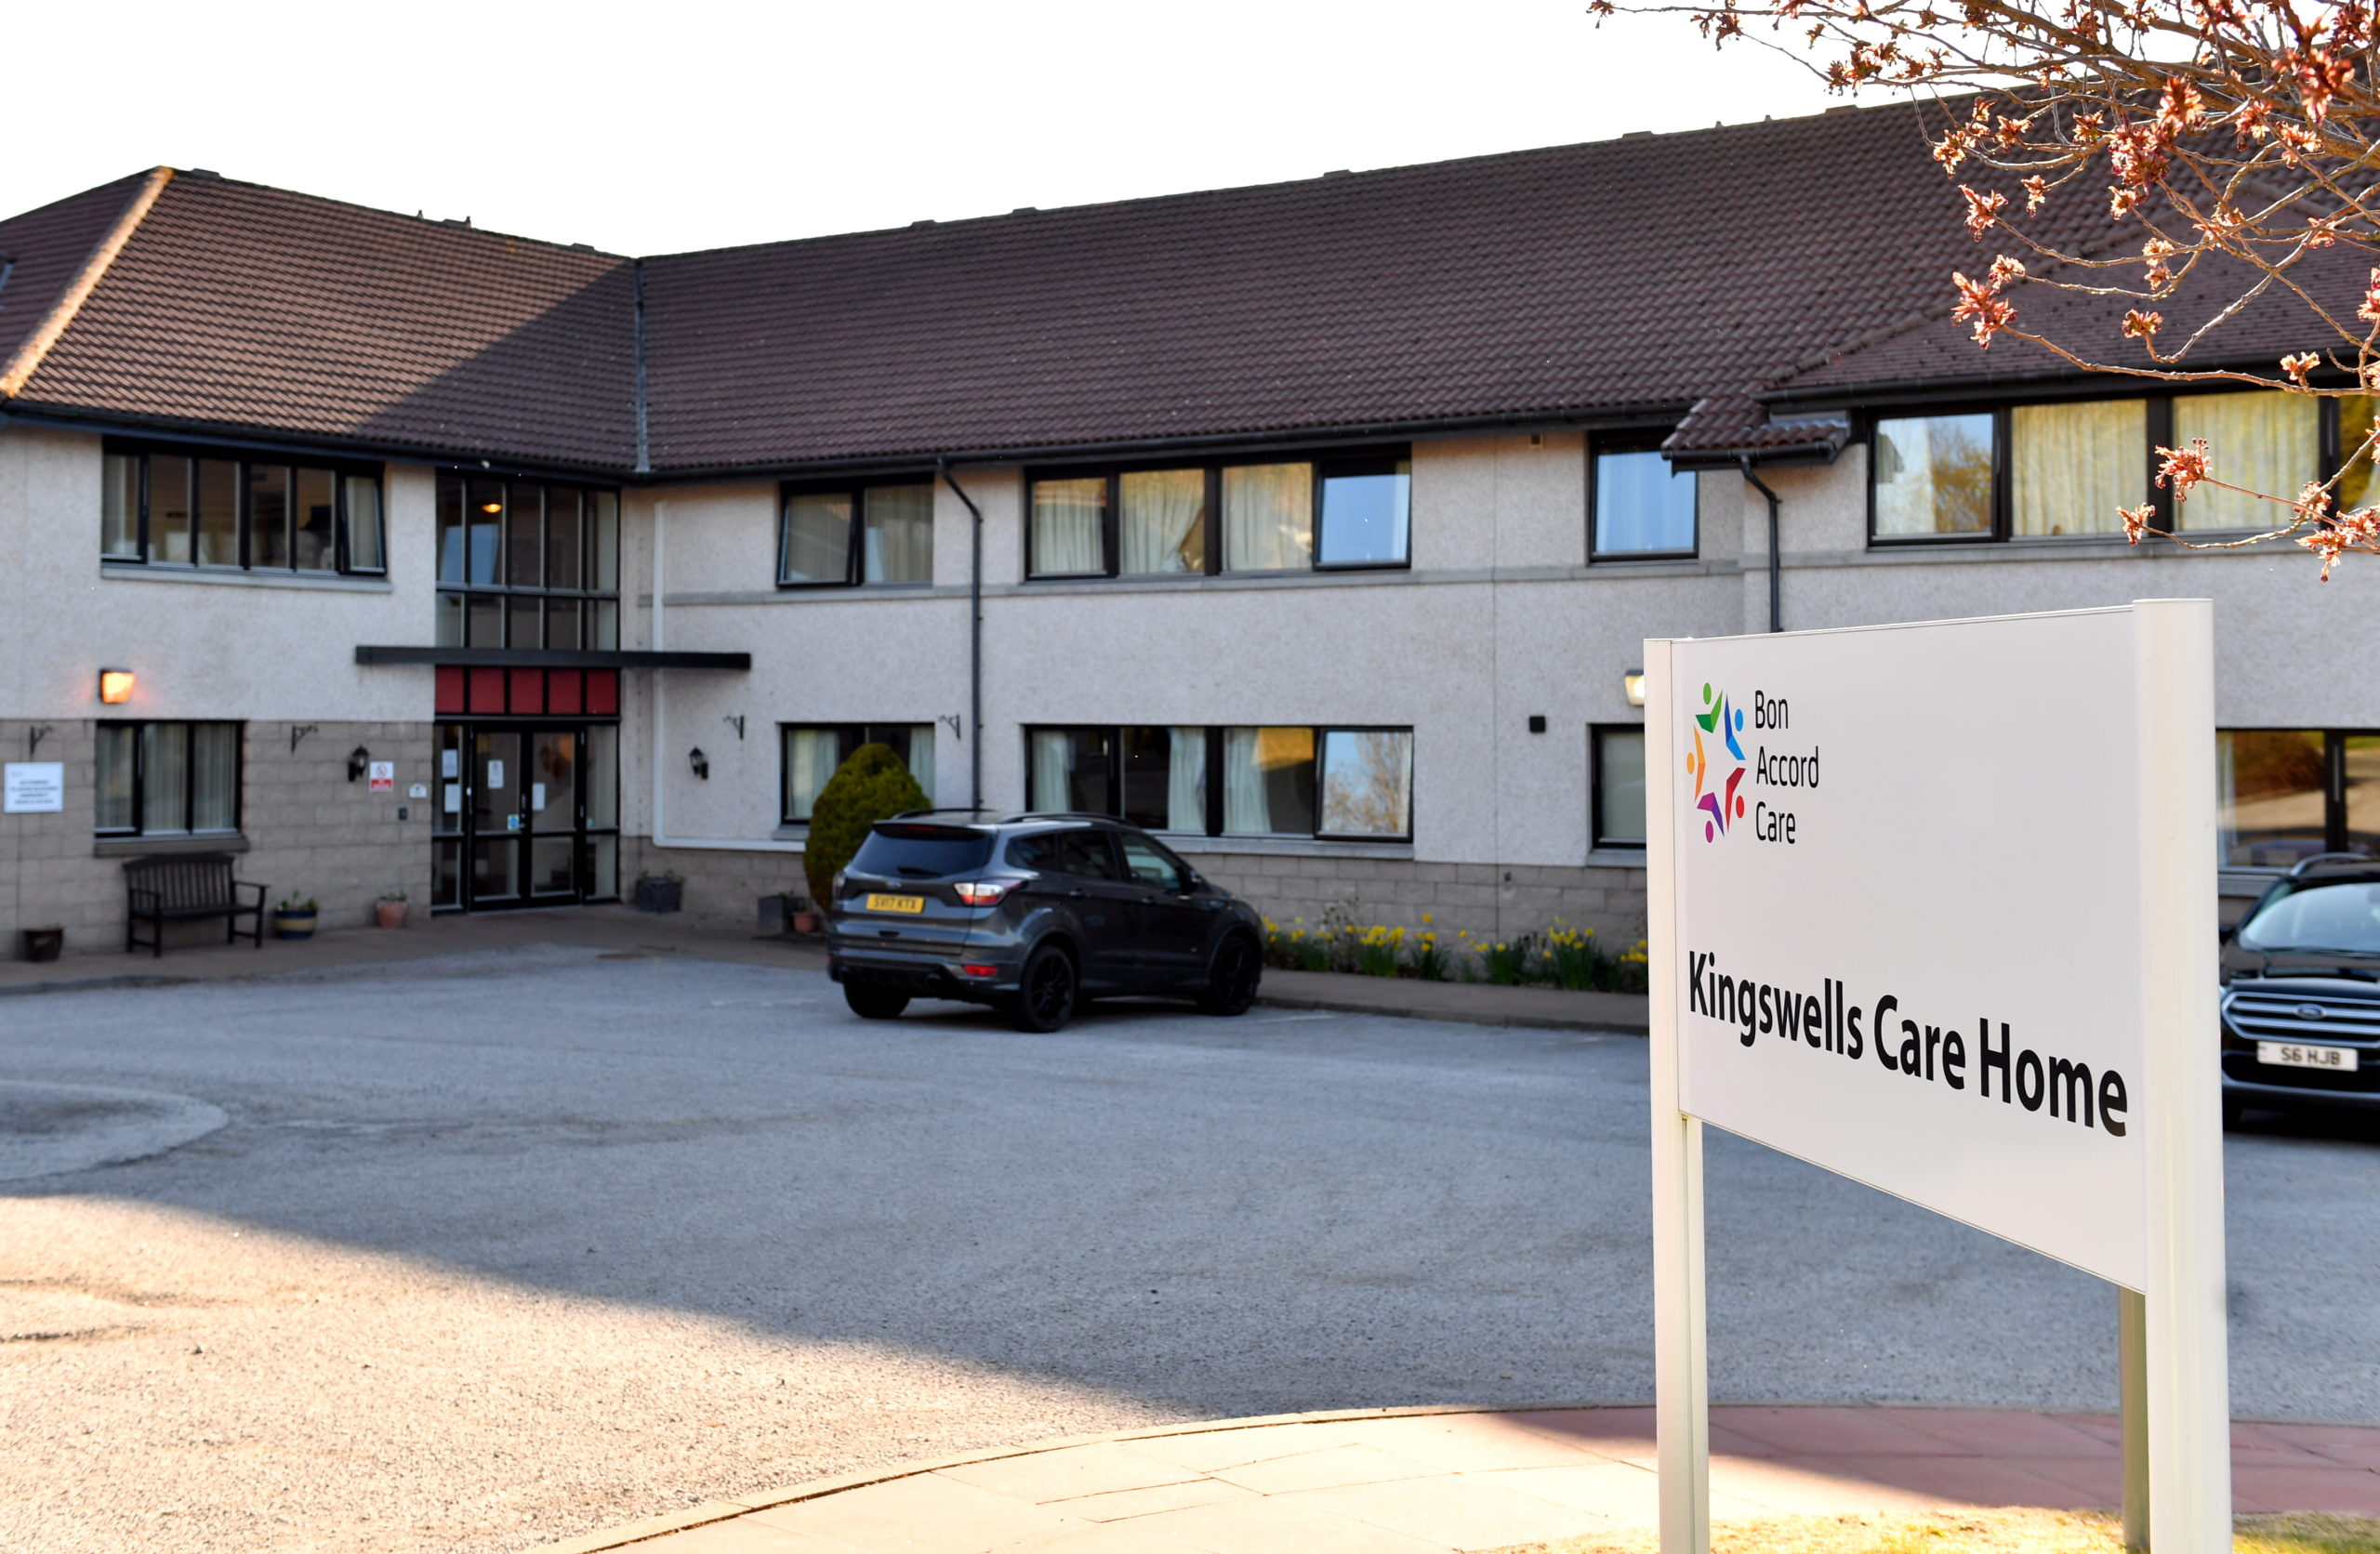 Kingswells Care Home